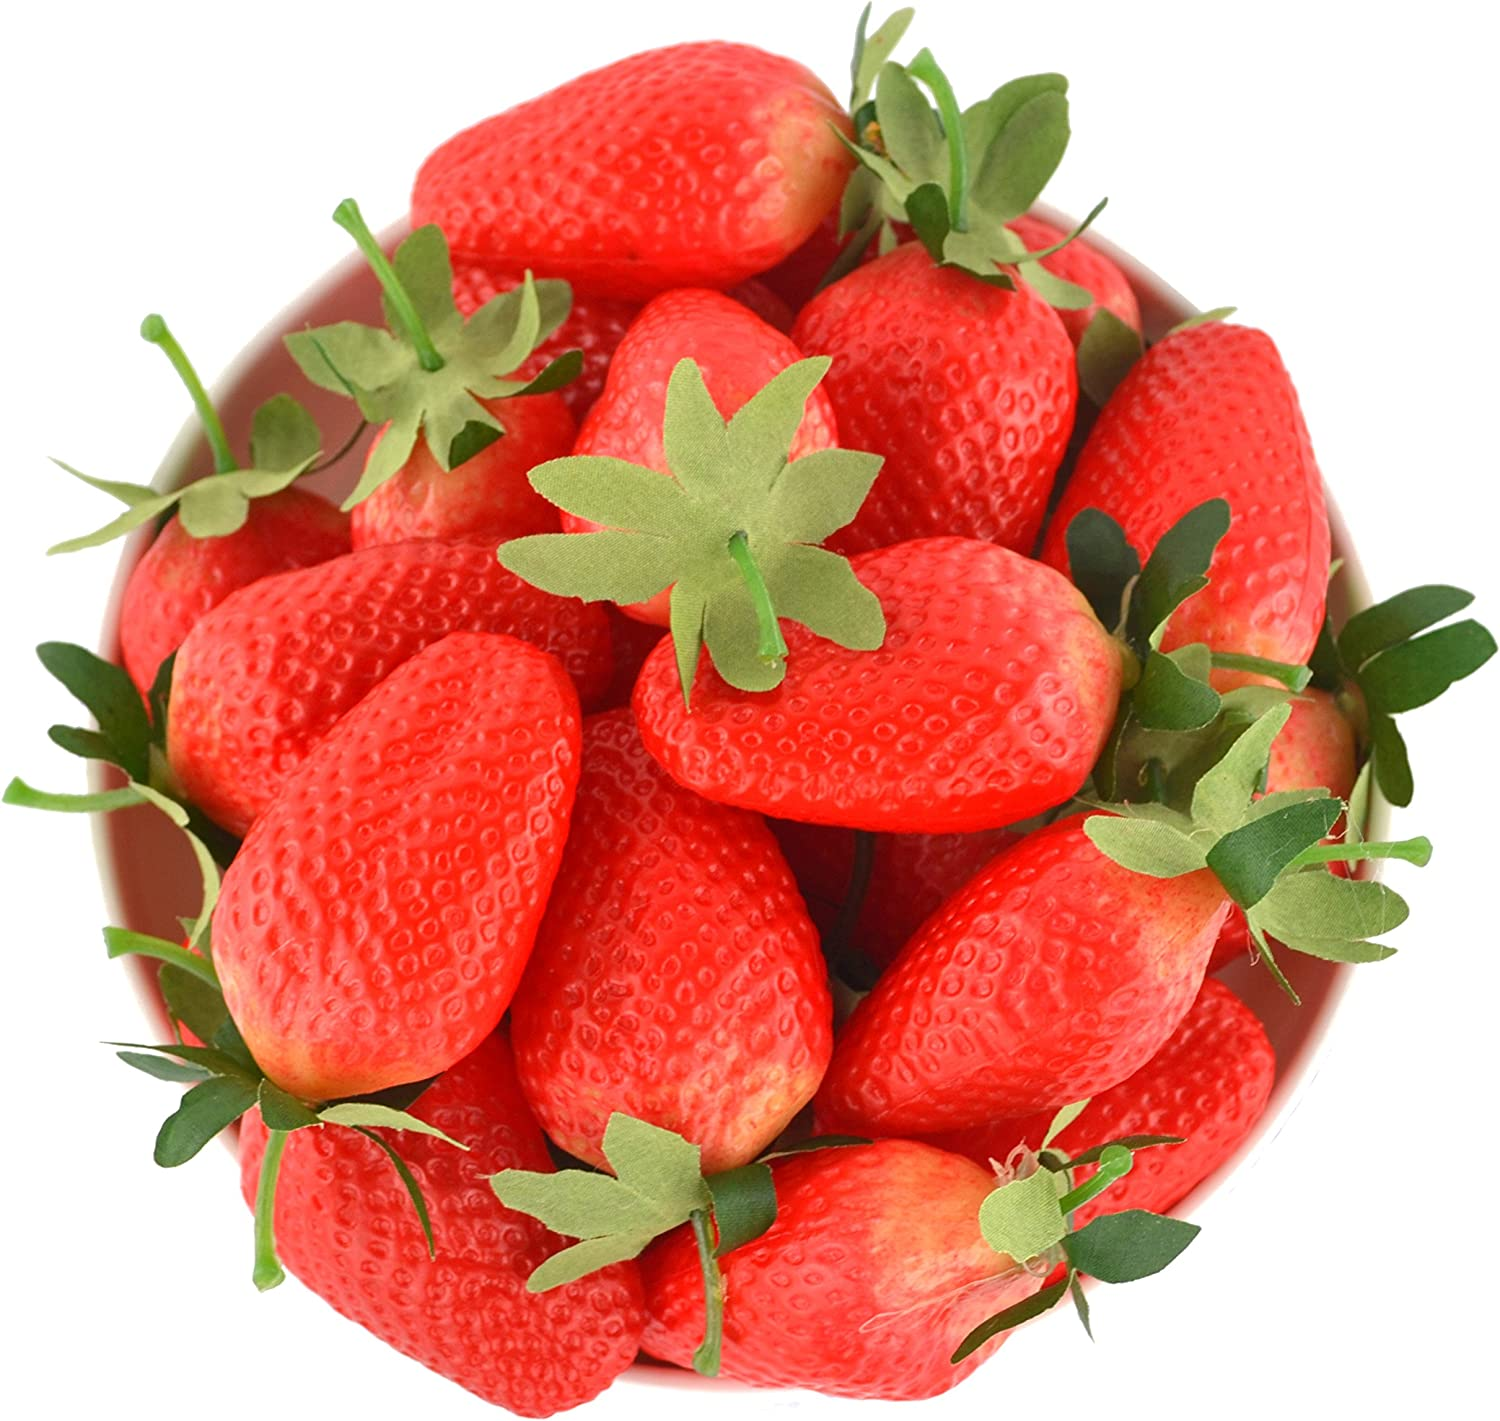 JEDFORE 12Pcs Simulation Artificial Lifelike Big Strawberries Set Fake Fruit for Home House Kitchen Party Decoration